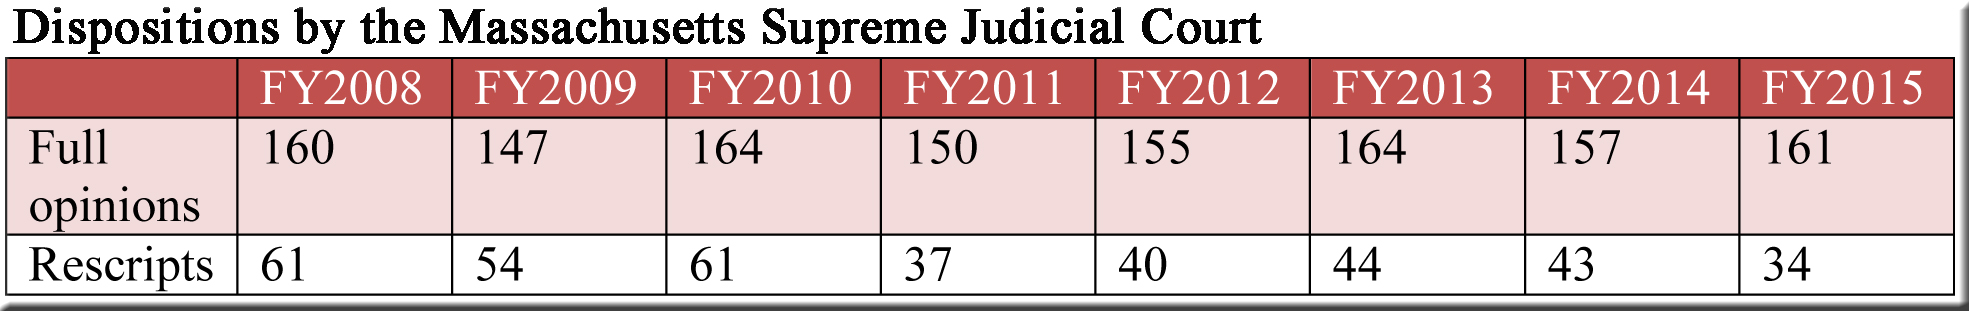 number-of-decisions-filed-by-the-ma-supreme-judicial-court